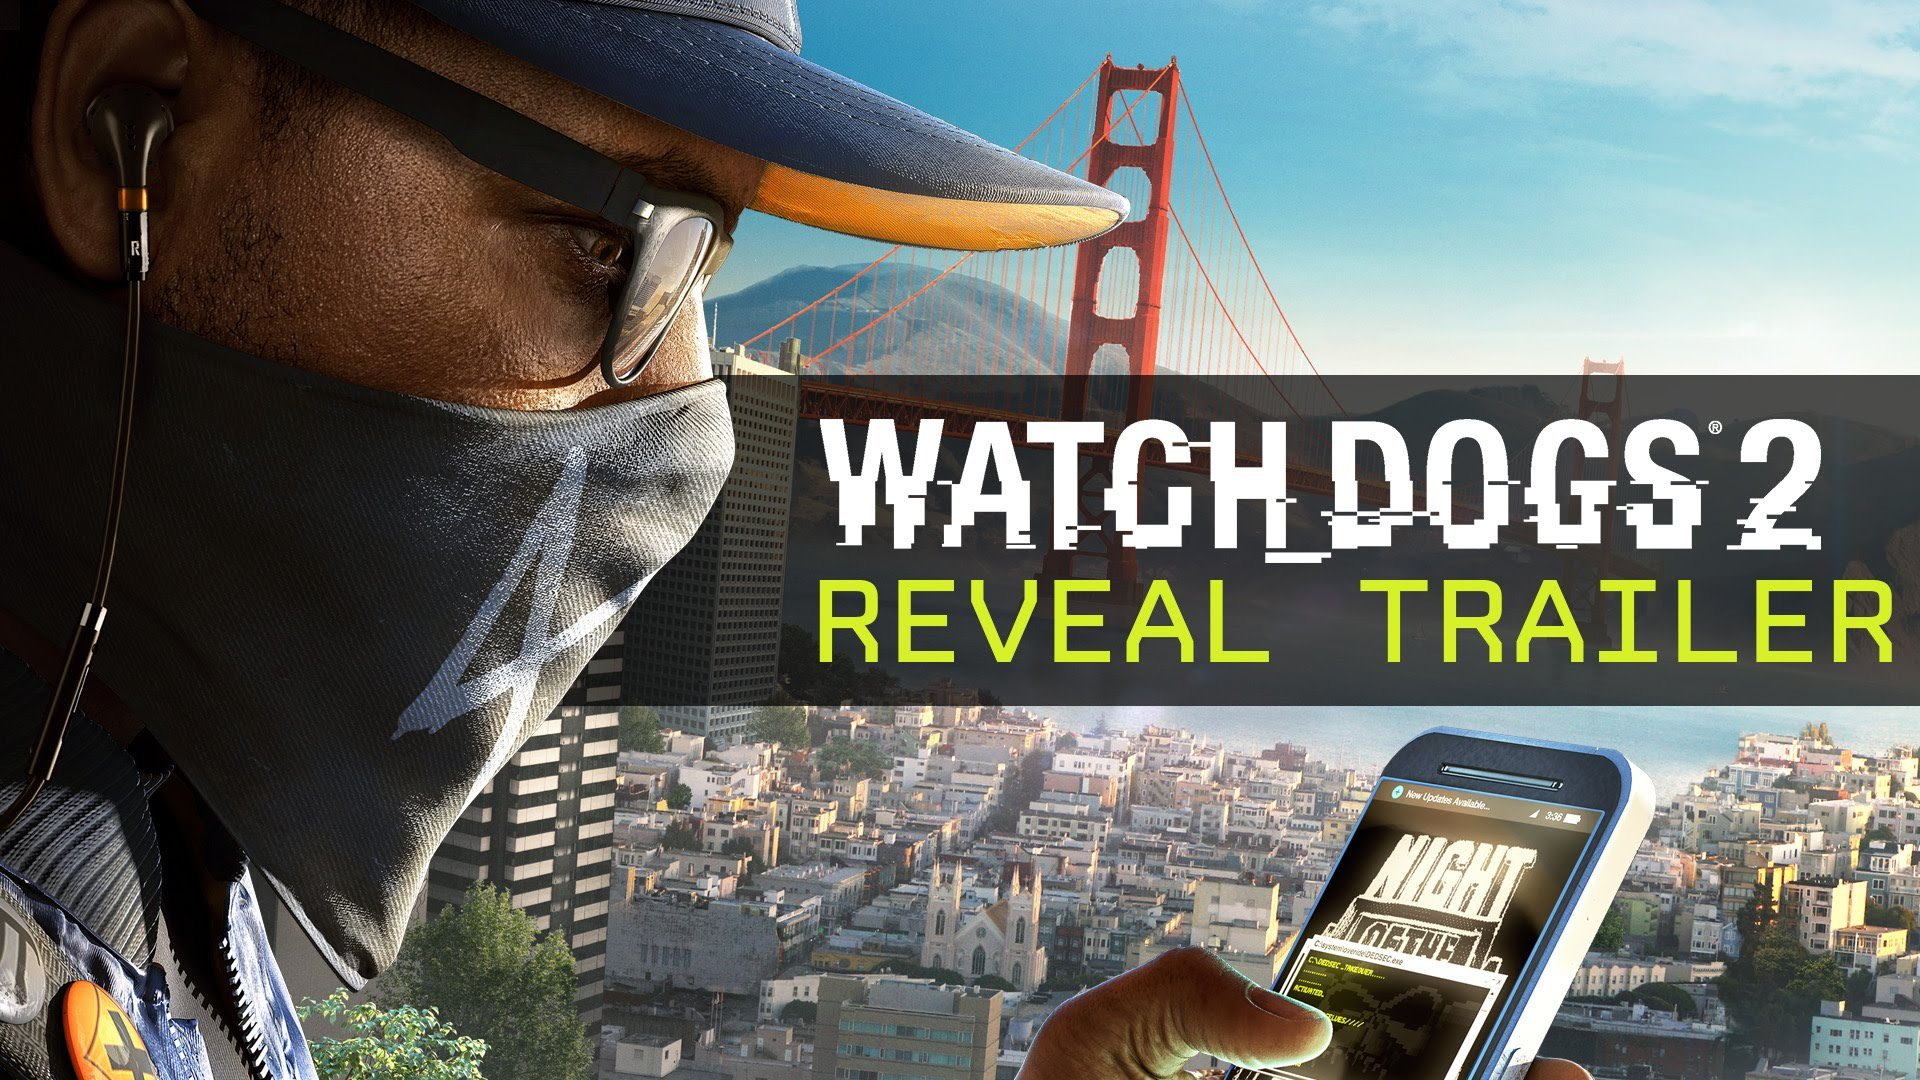 Release Date Of Watch Dogs